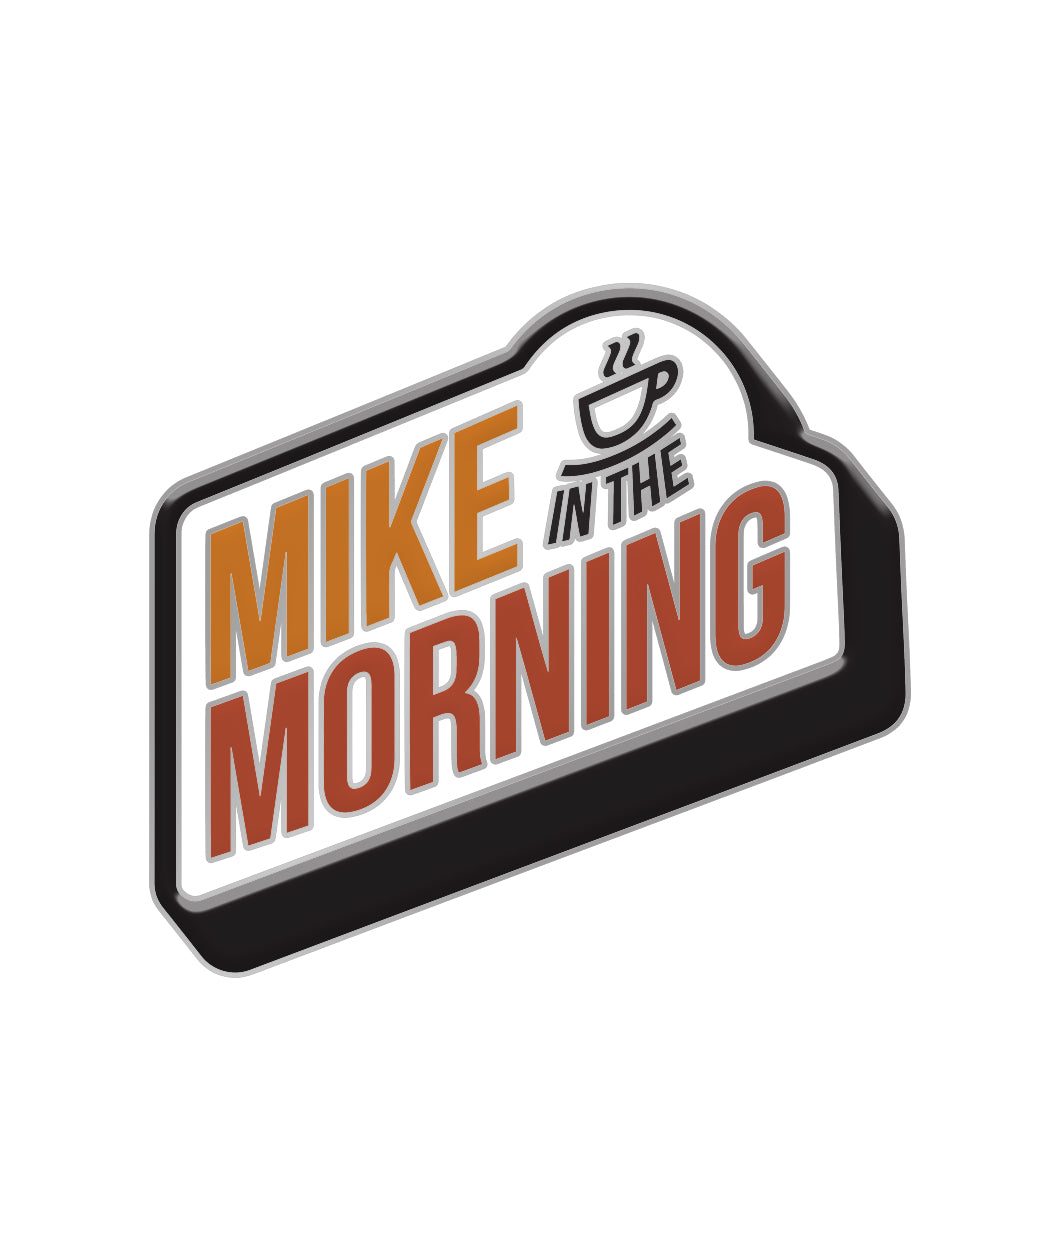 Mike In The Morning Enamel Pin